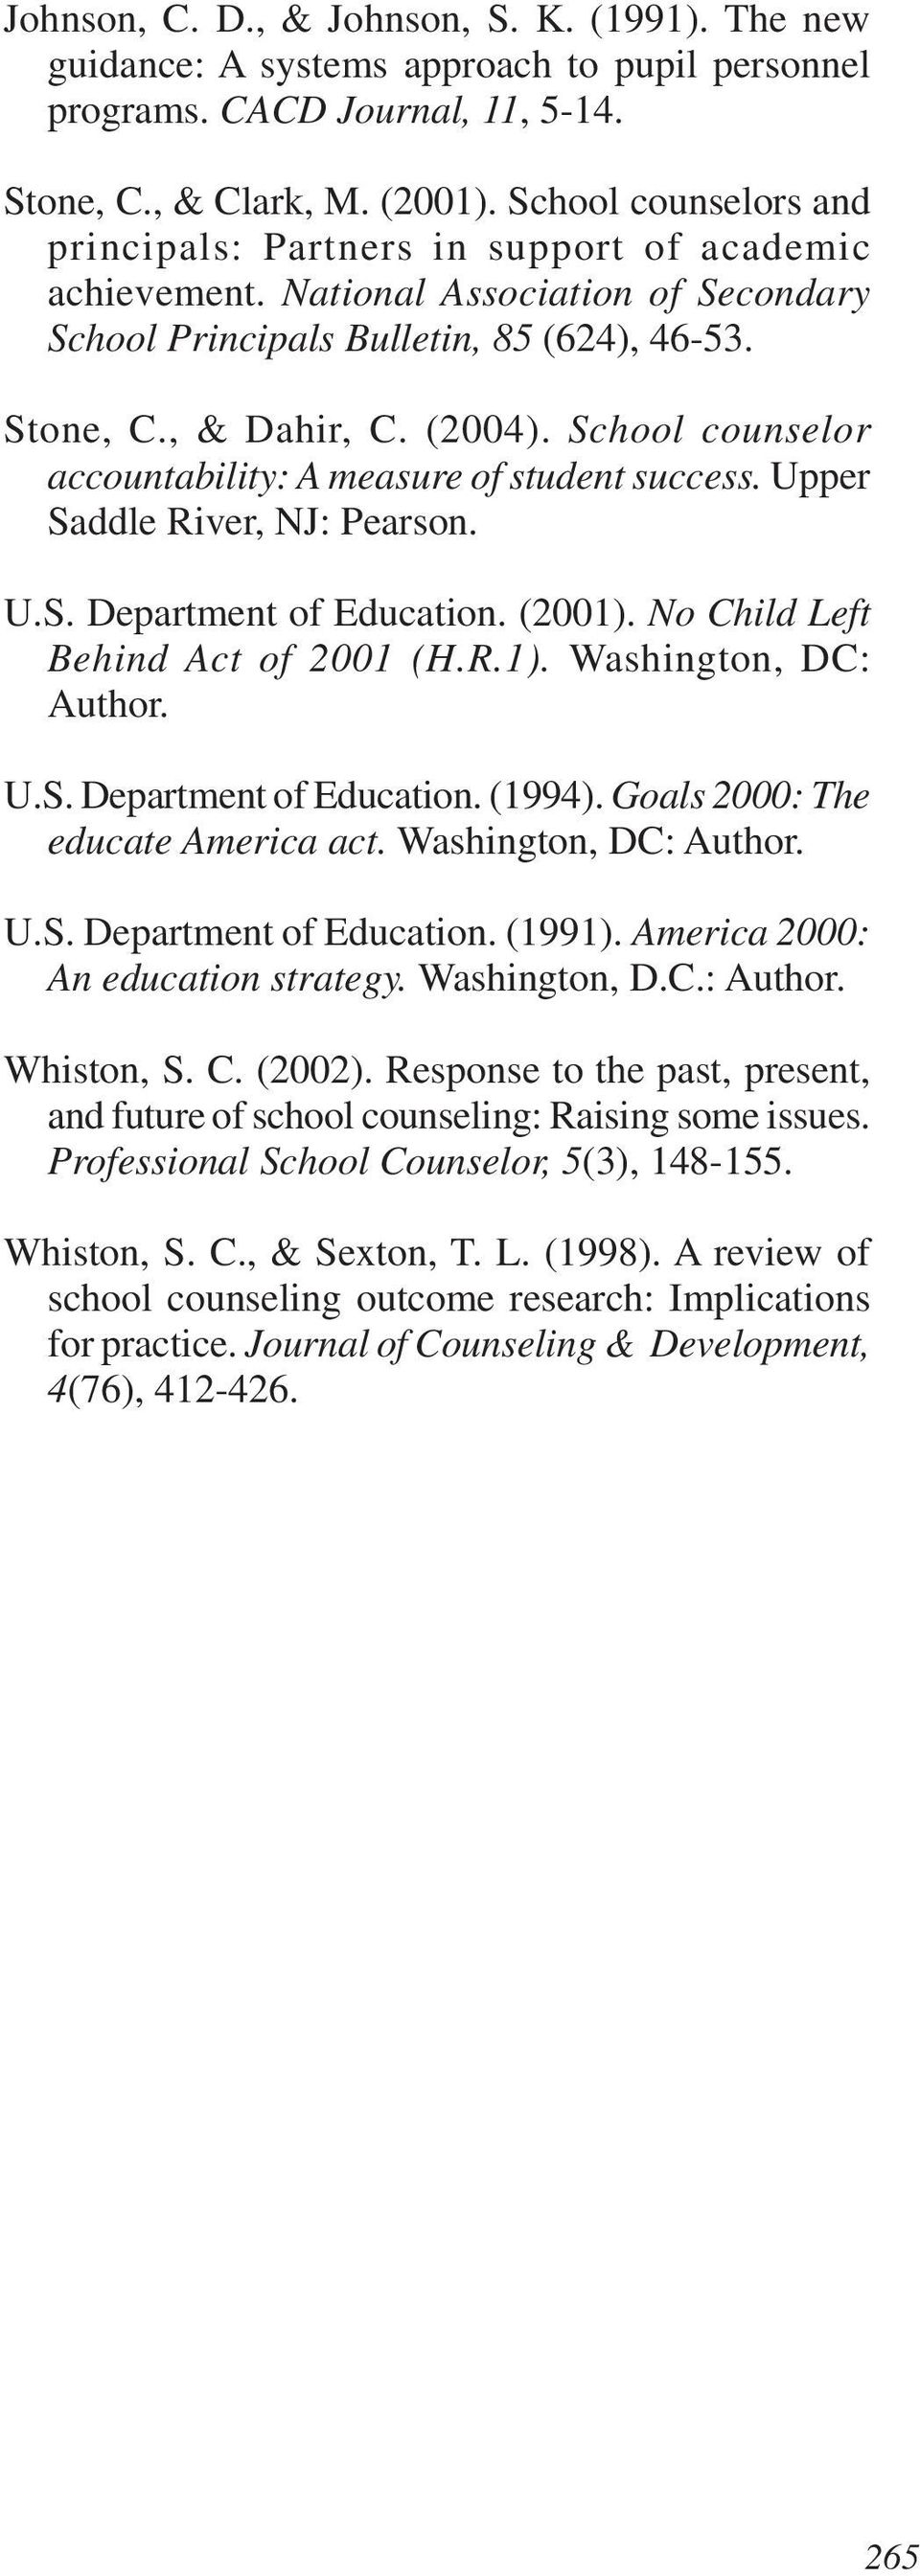 School counselor accountability: A measure of student success. Upper Saddle River, NJ: Pearson. U.S. Department of Education. (2001). No Child Left Behind Act of 2001 (H.R.1). Washington, DC: Author.